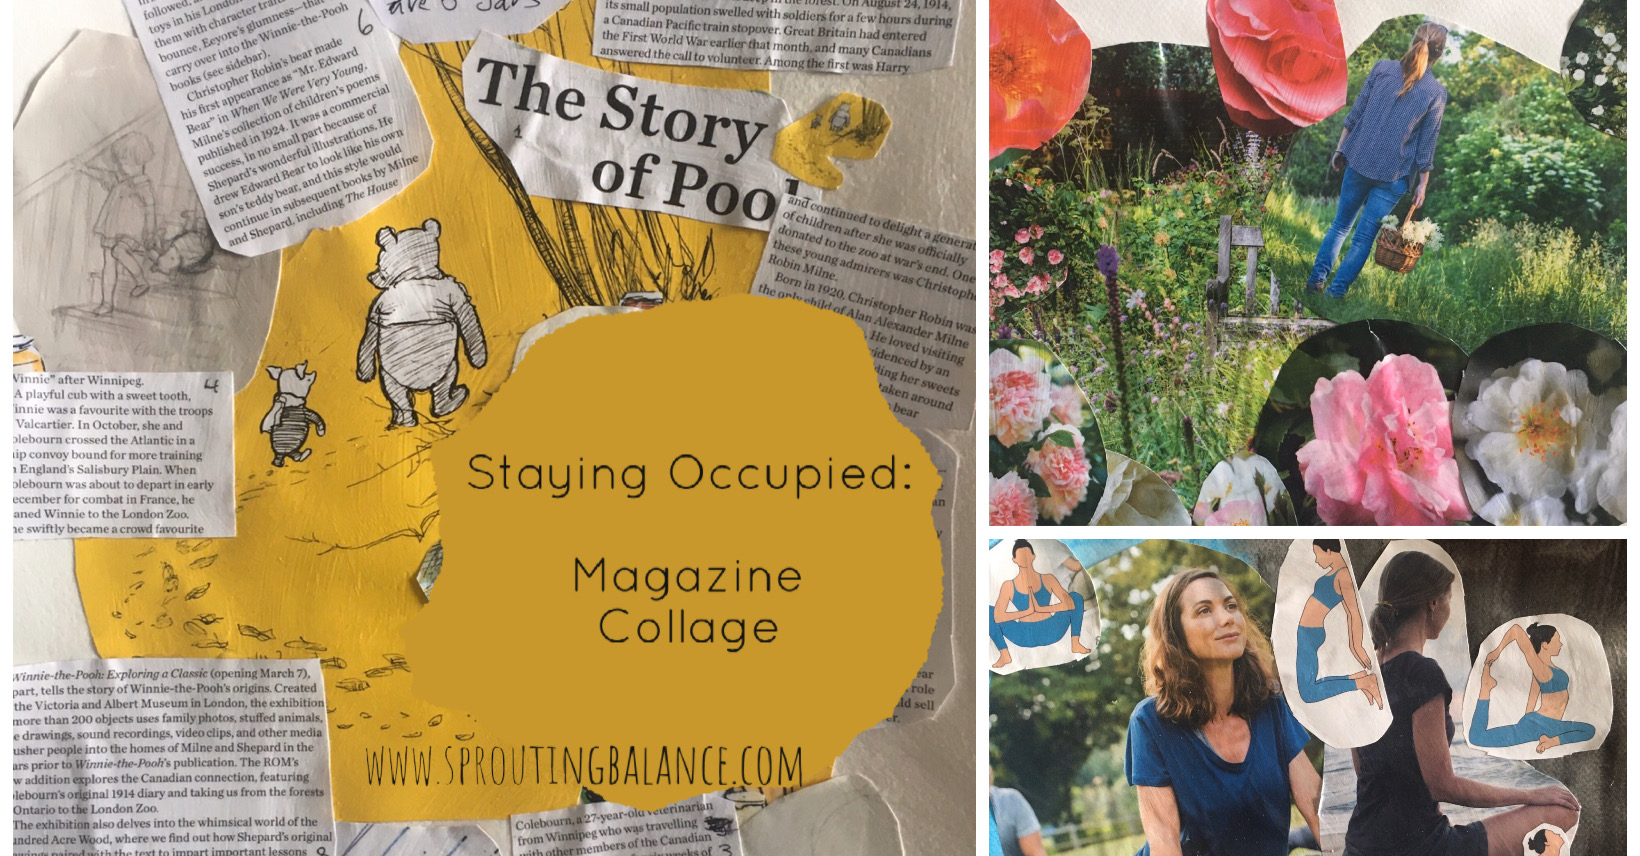 Staying Occupied: Magazine Collage | www.sproutingbalance.com | #stayhome #socialdistancing #bepositive